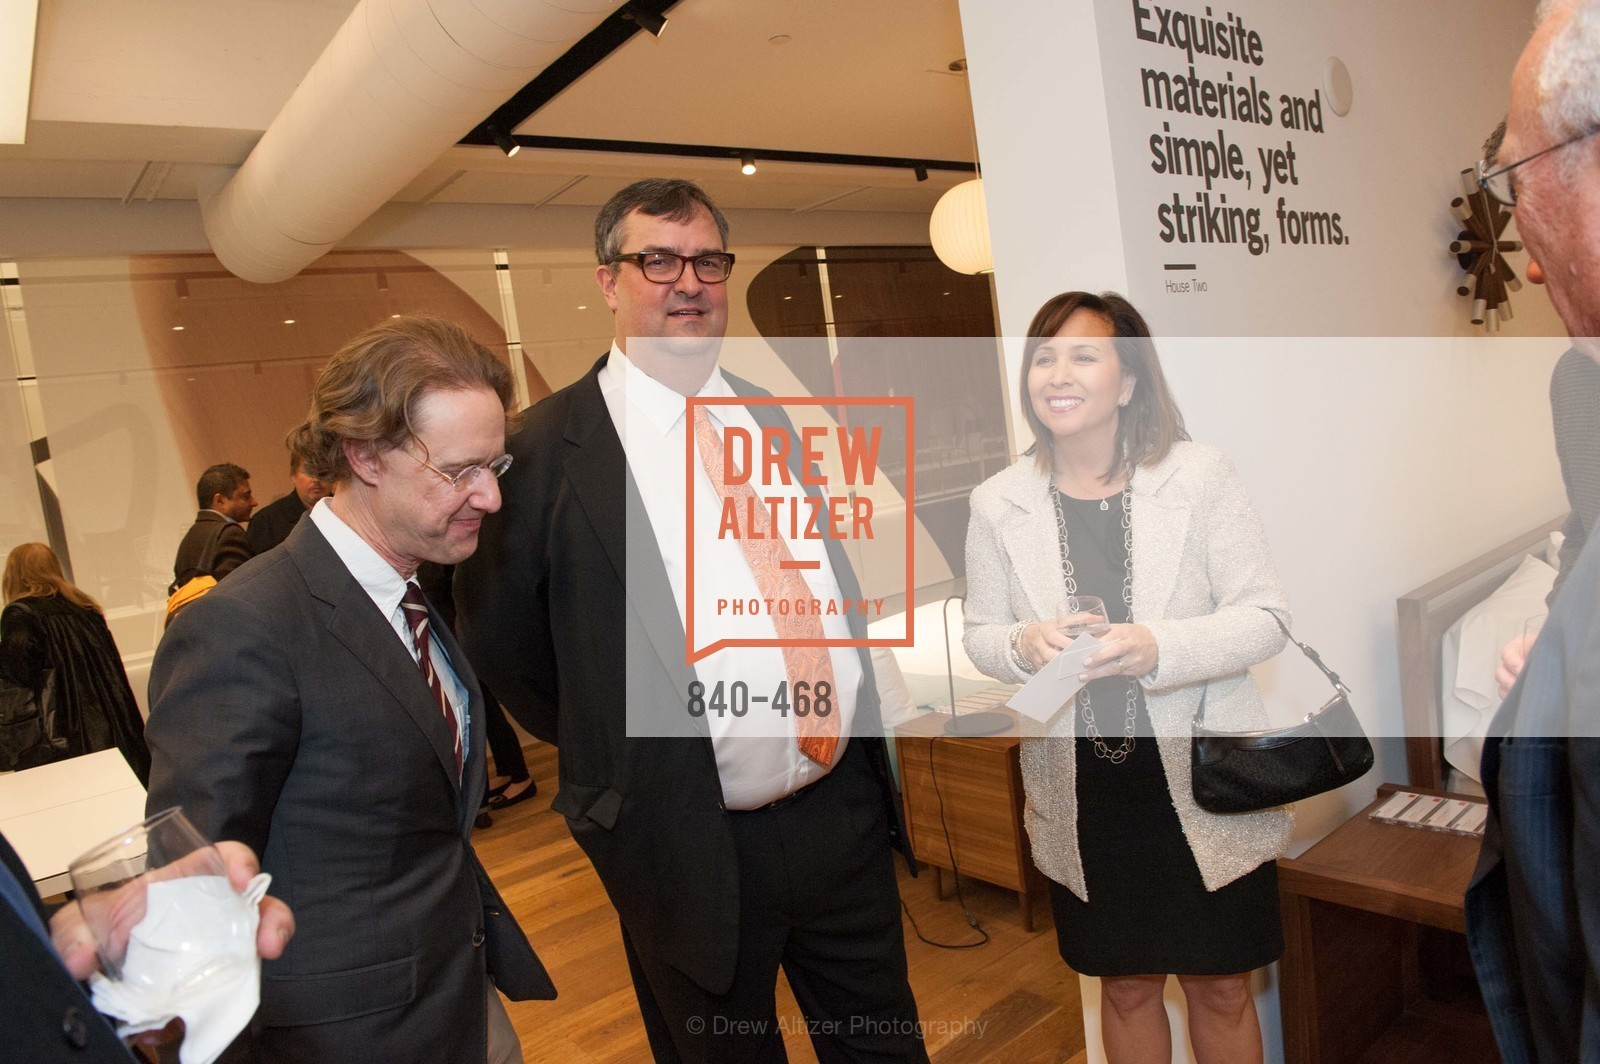 John McPhee, Heidi Leupp, DESIGN WITHIN REACH Studio Opening, US. US, January 21st, 2014,Drew Altizer, Drew Altizer Photography, full-service agency, private events, San Francisco photographer, photographer california